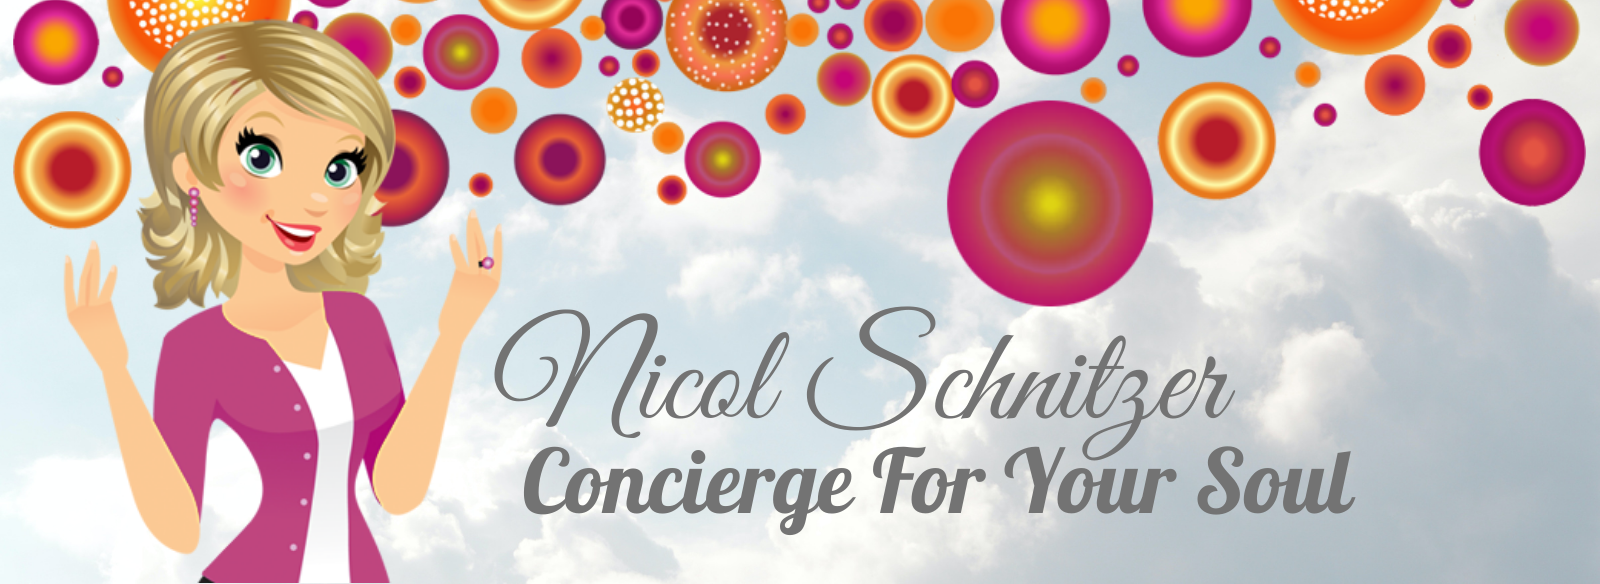 Concierge For Your Soul